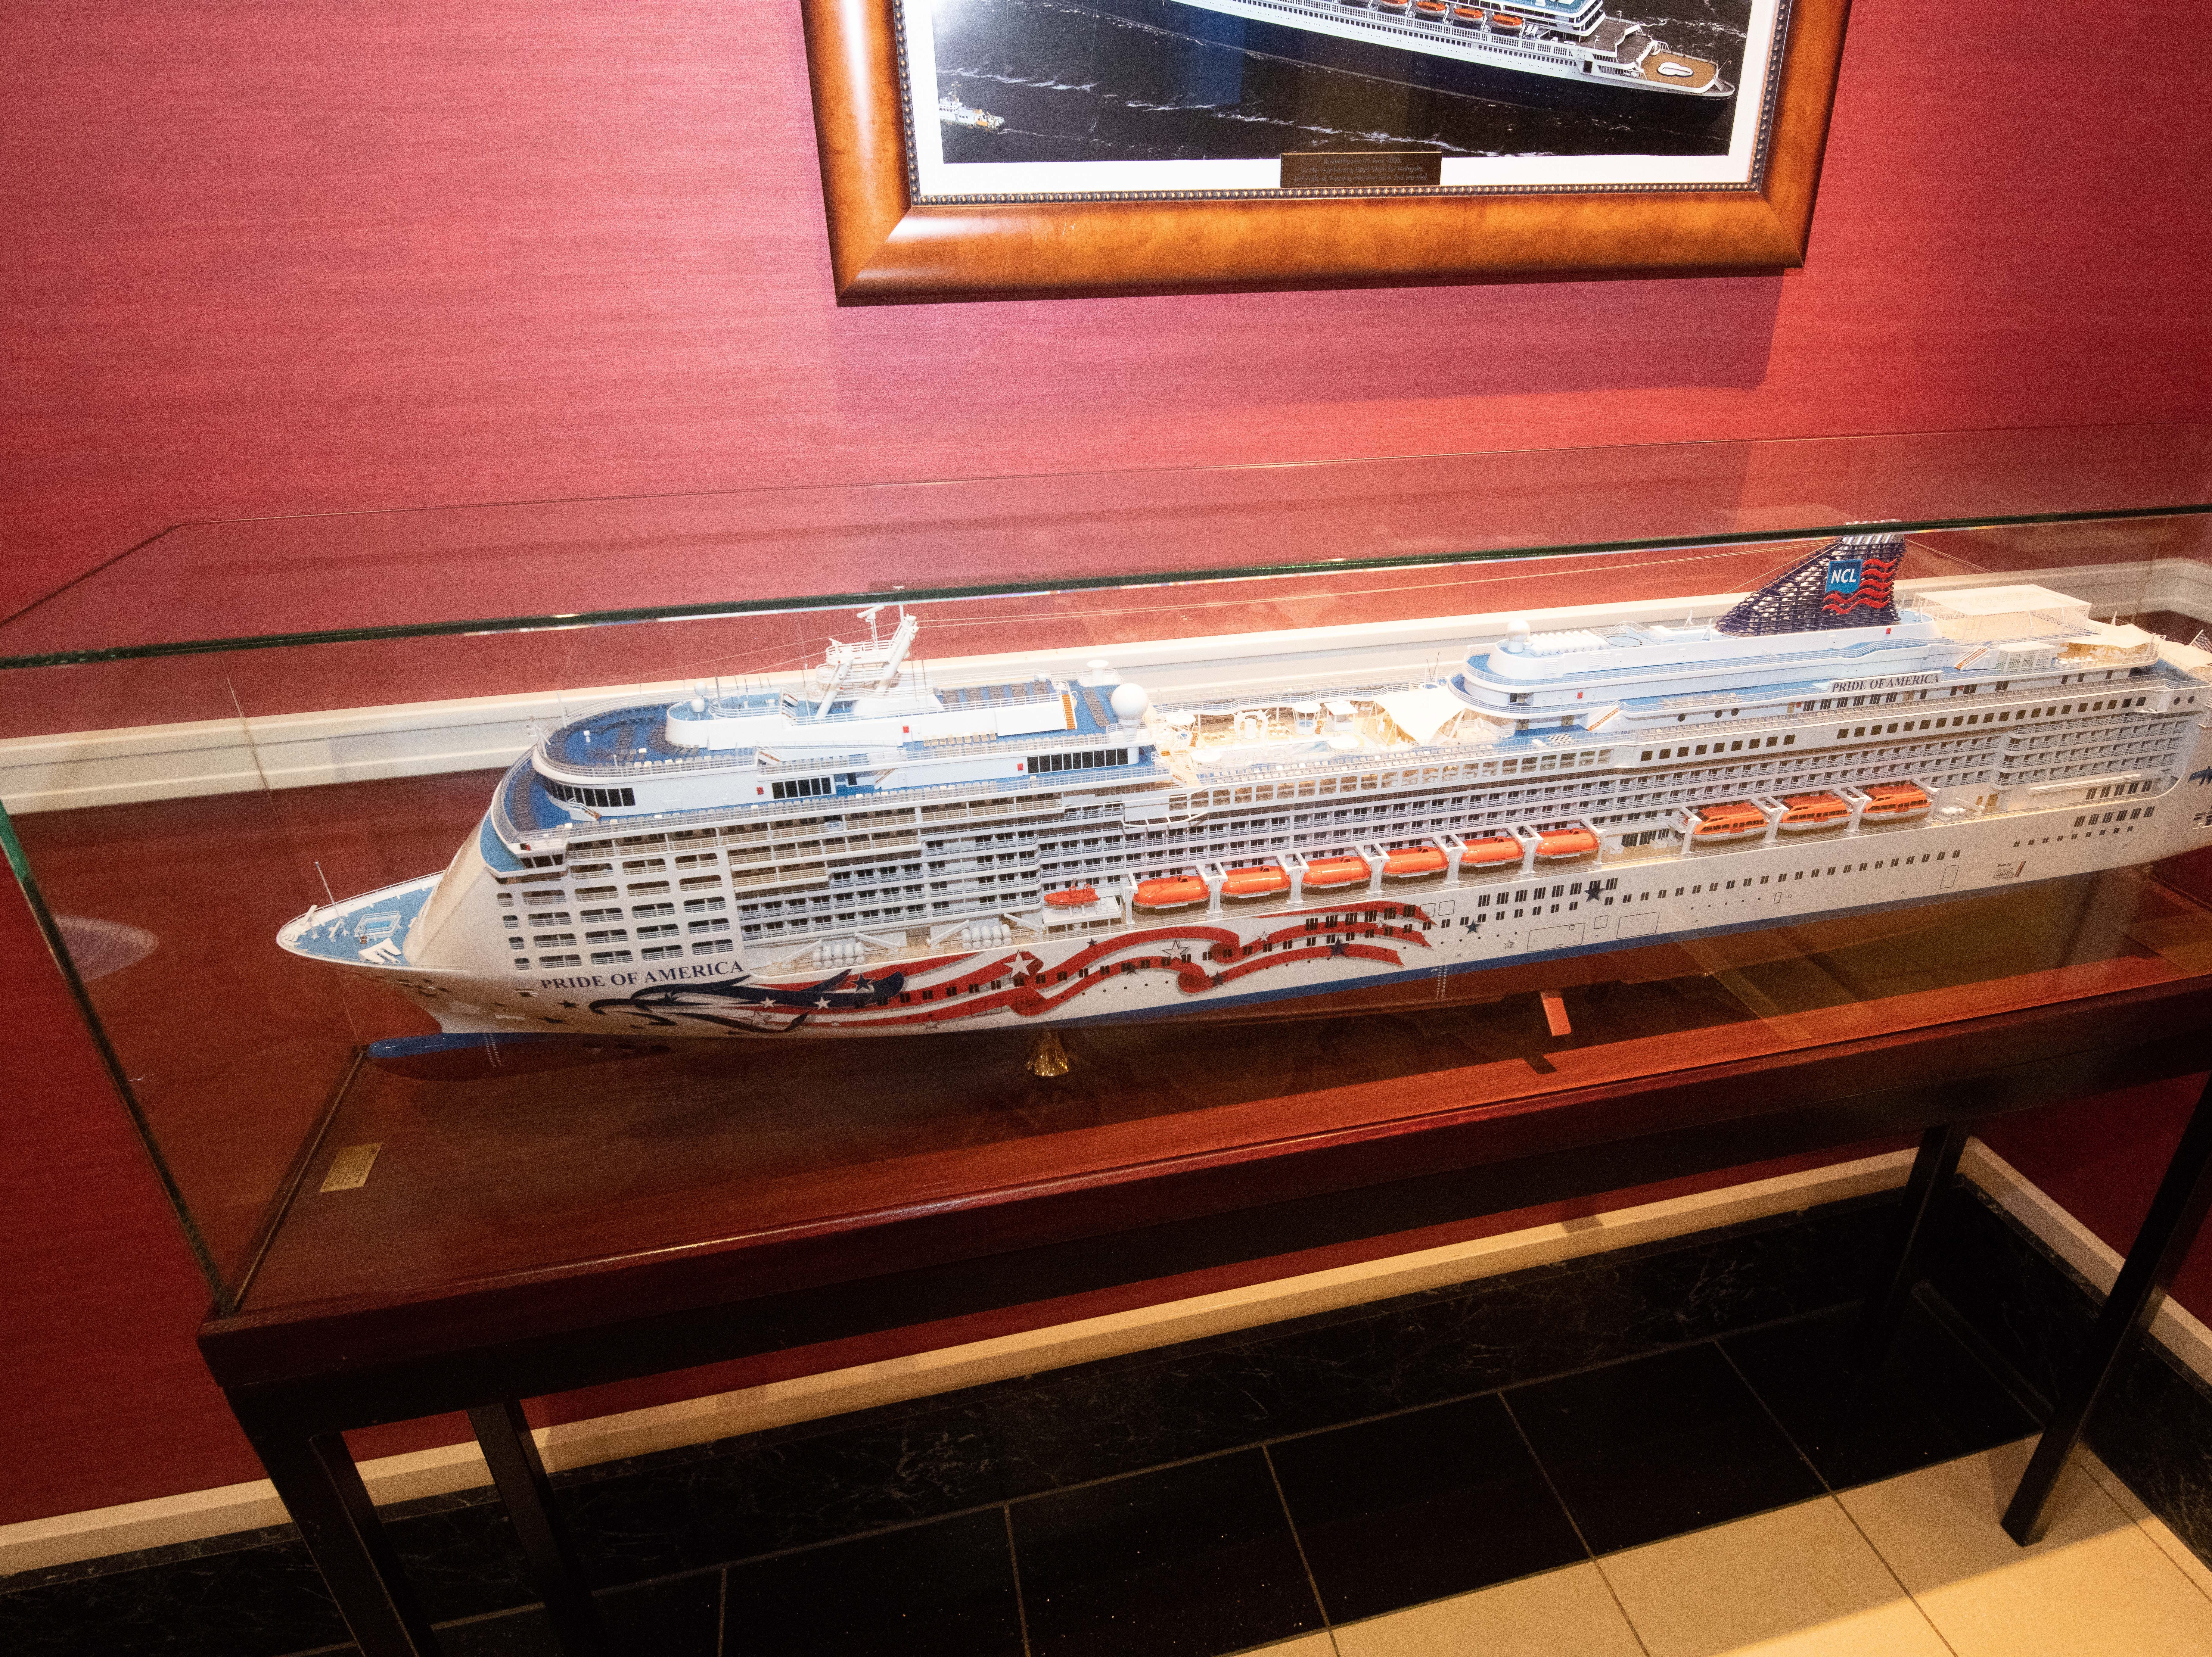 A detailed model of Pride of America is located just off the John's Adams Coffee Bar.